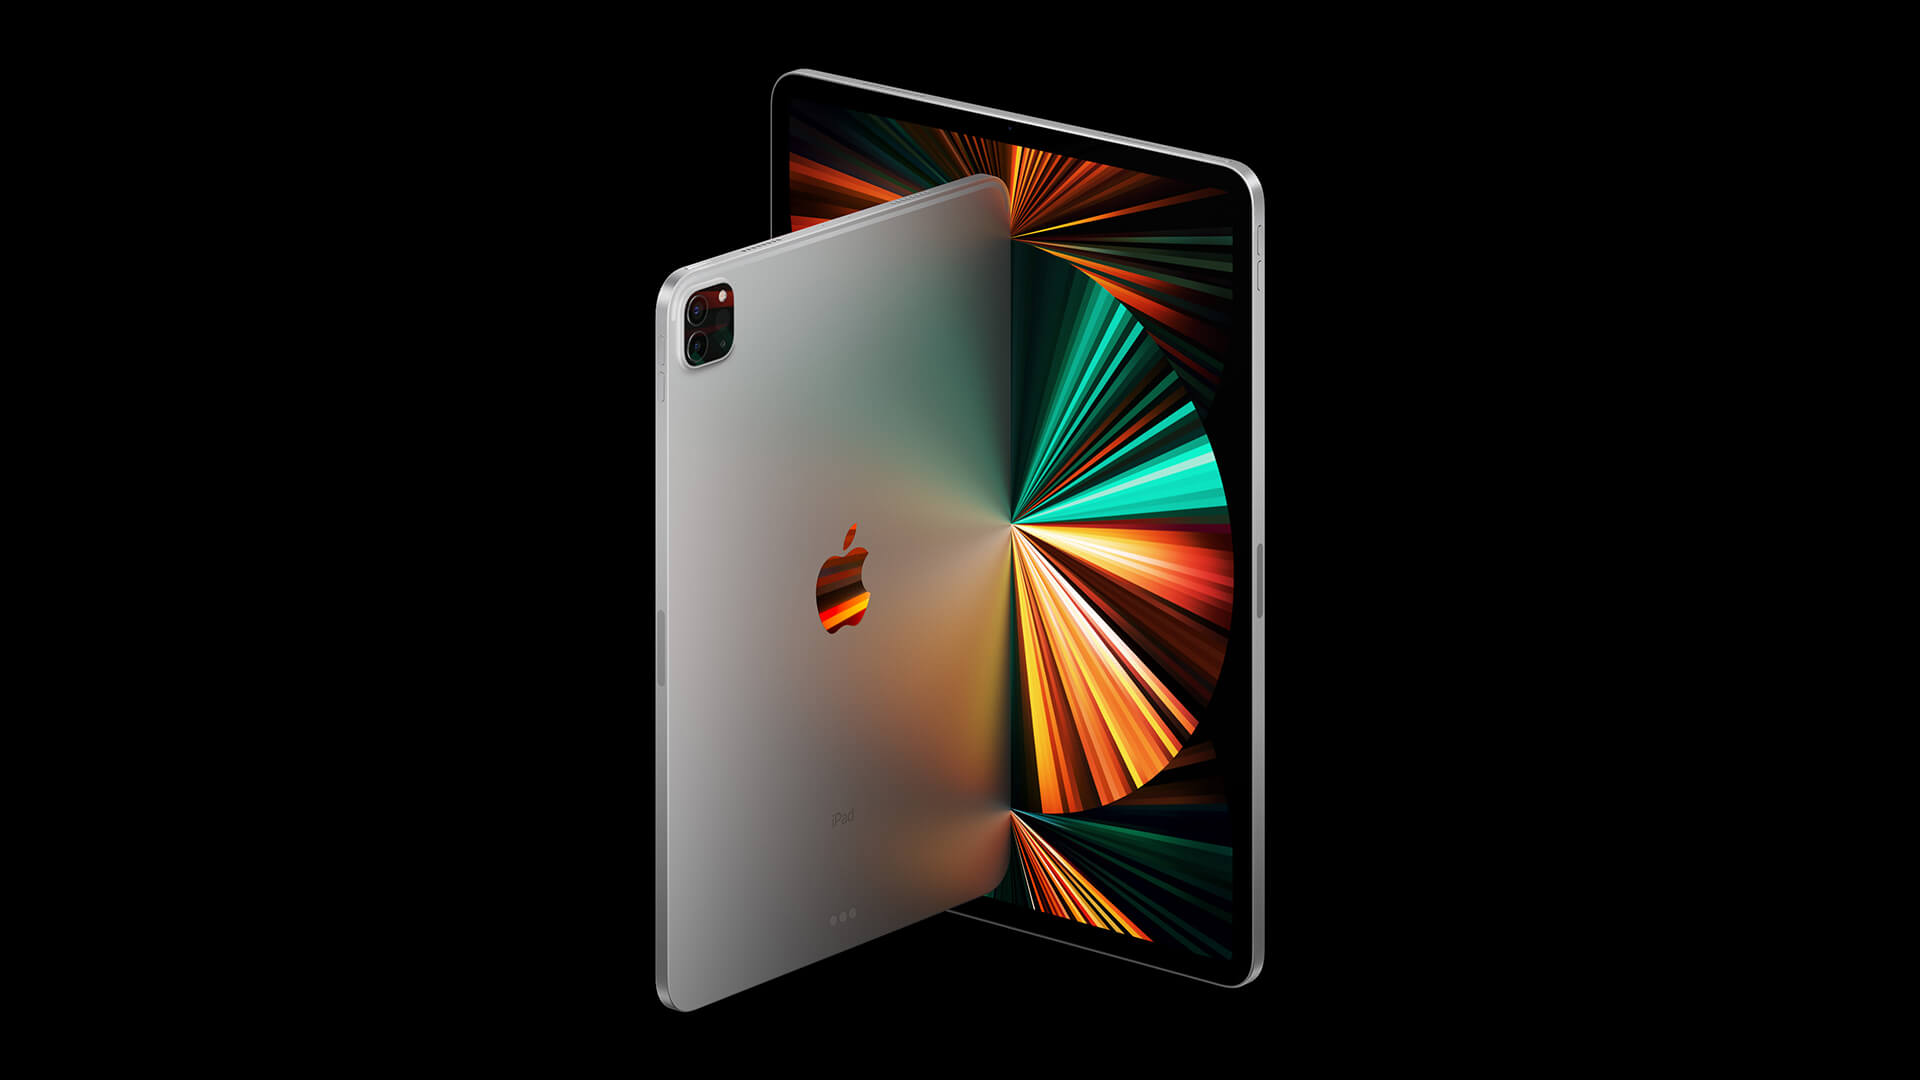 Apple iPad Pro (2021) Launched with M1 Processor, 5G: Specifications, Price in India